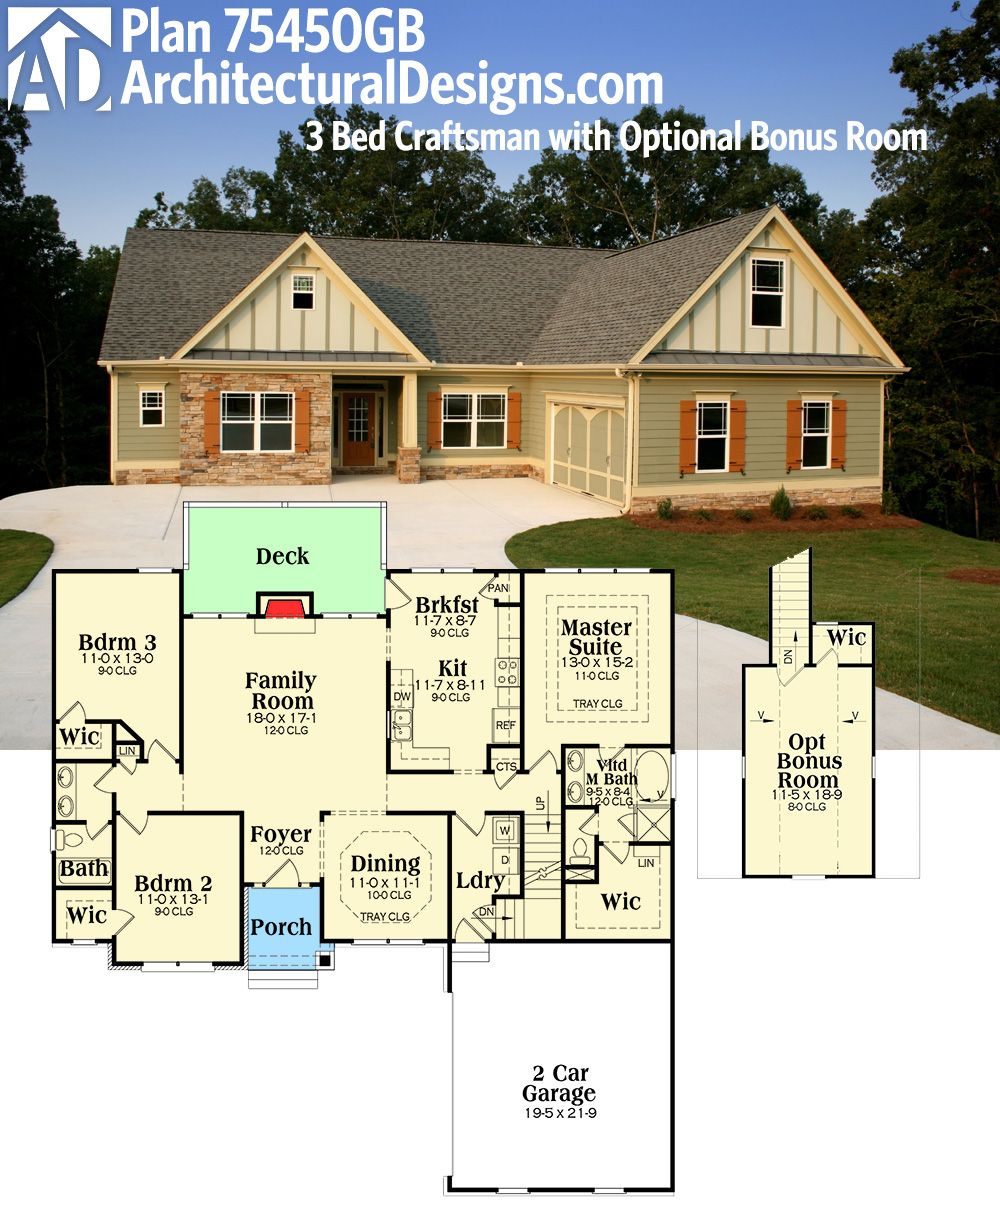 Plan 75450gb 3 bed craftsman with optional bonus room for Craftsman house plans with bonus room